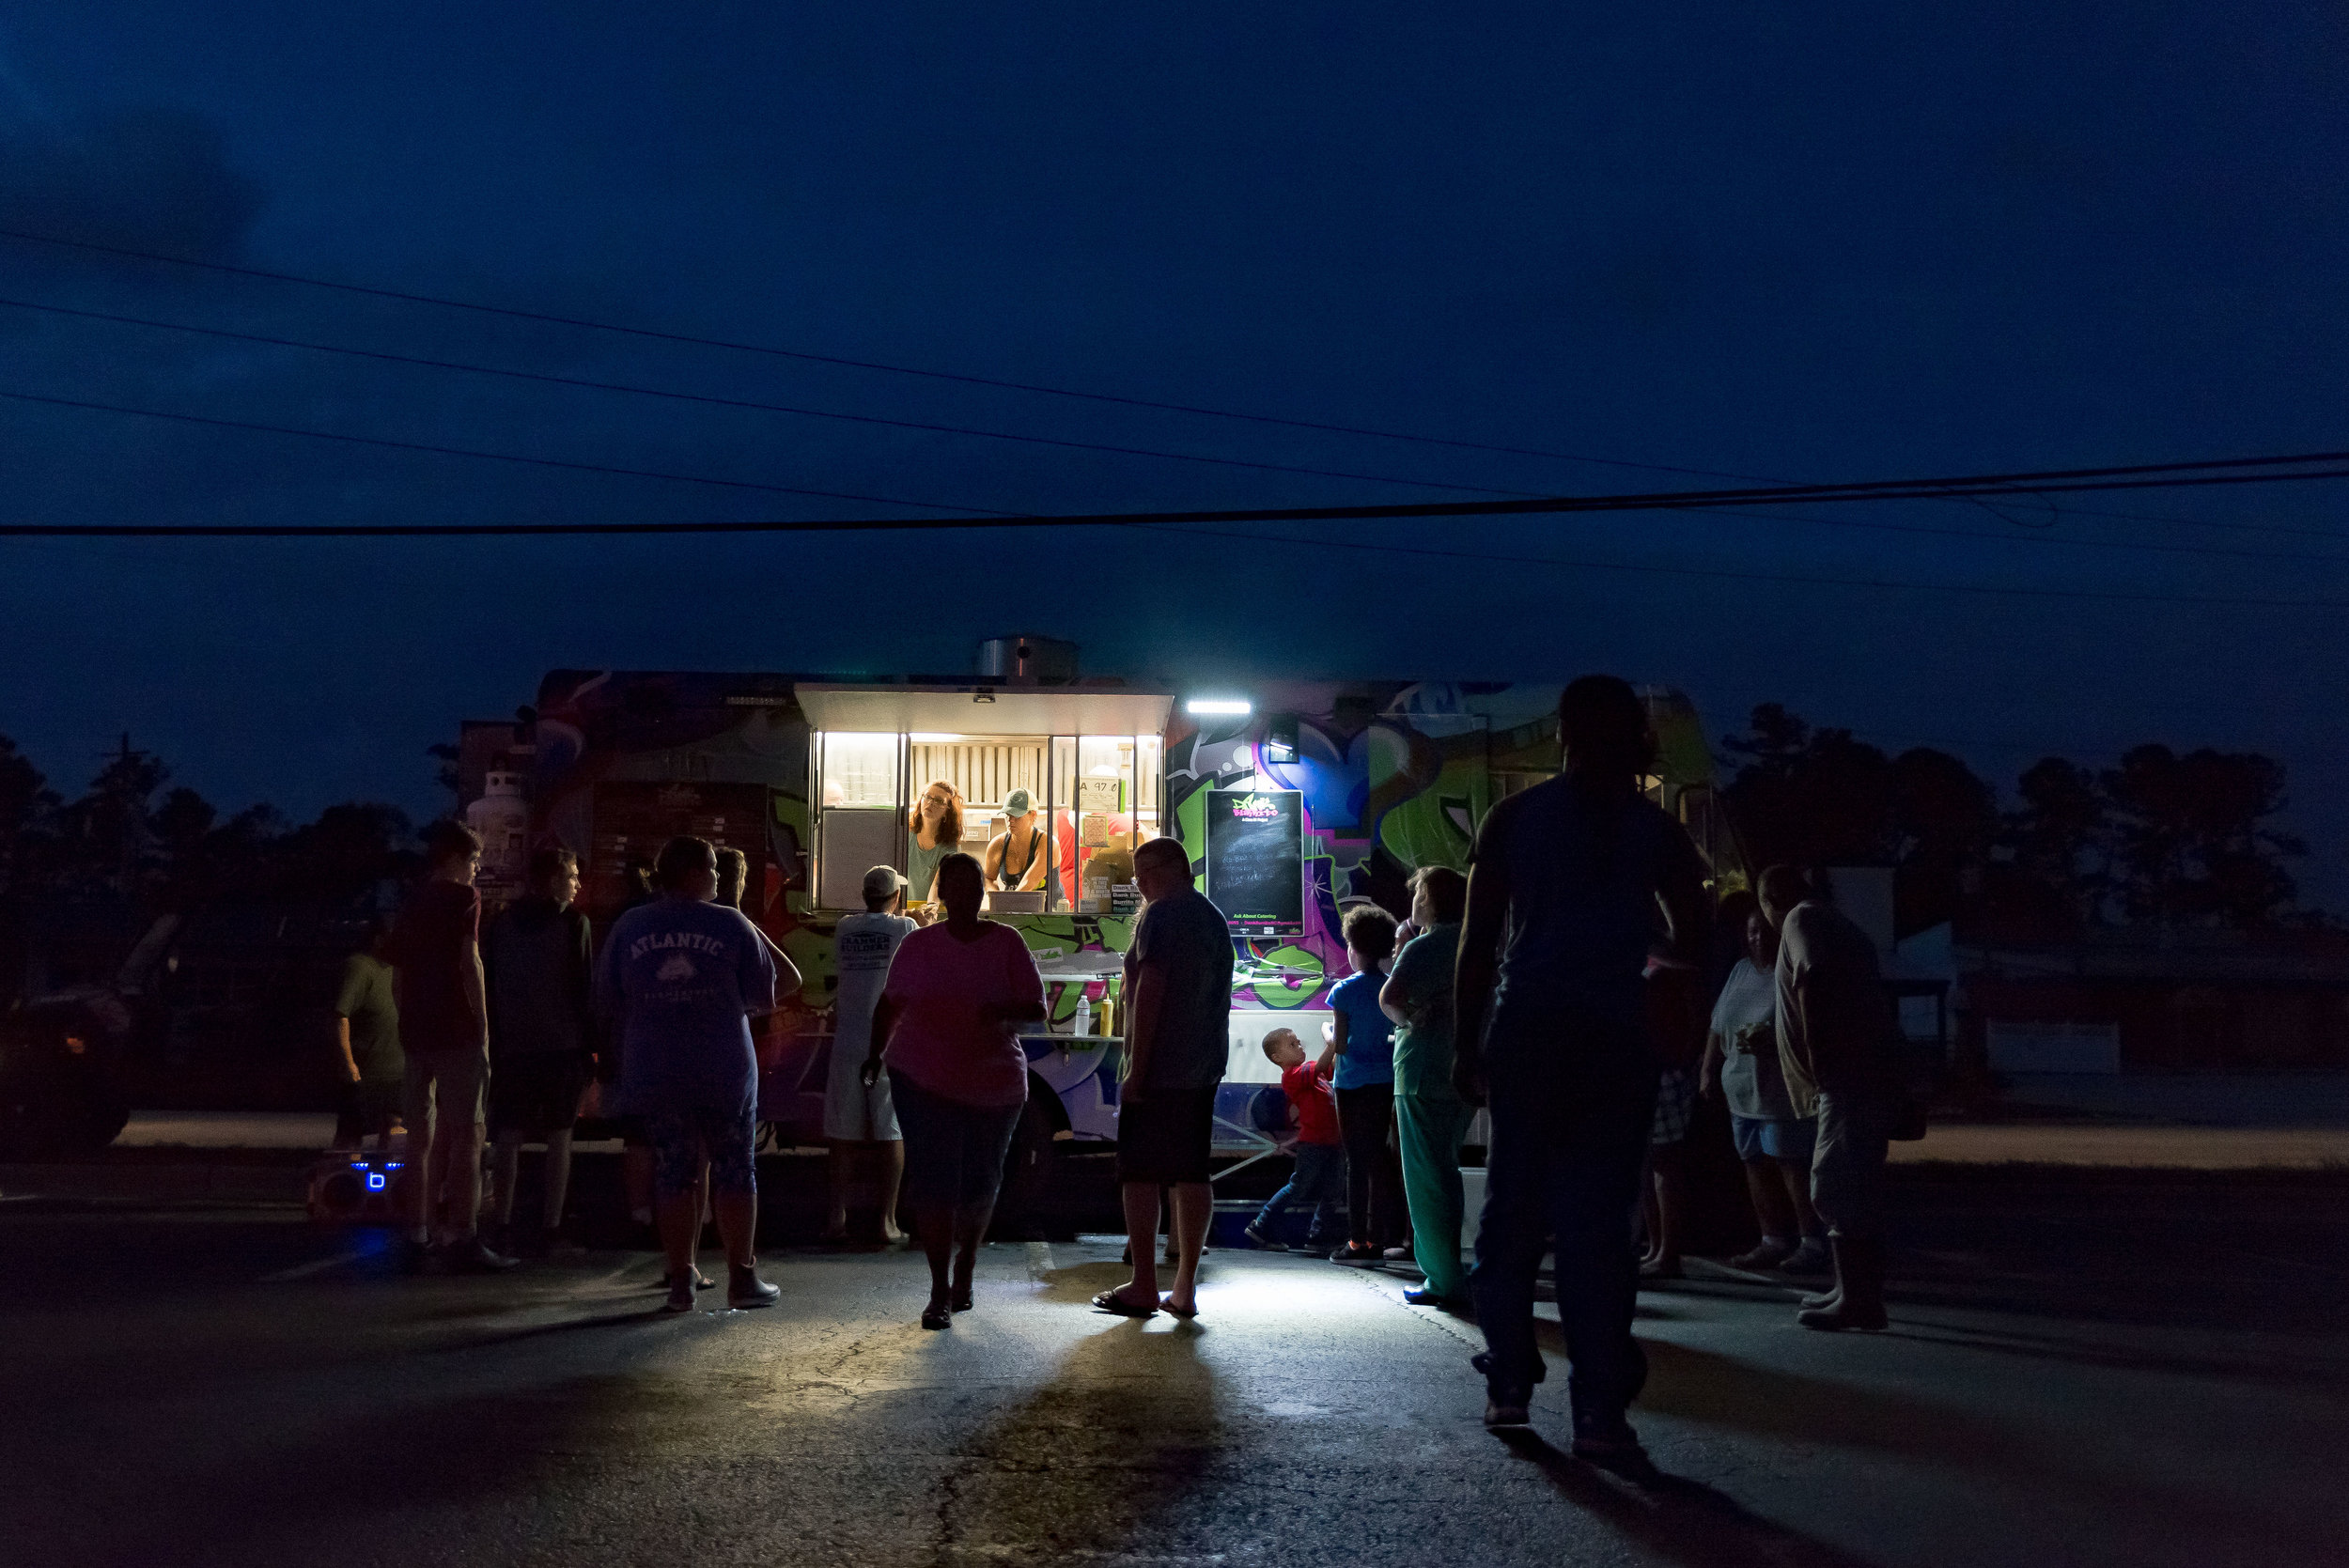 September 16, 2018, Atlantic Beach, NC- Food trucks provide much needed sustenance to hungry residents.